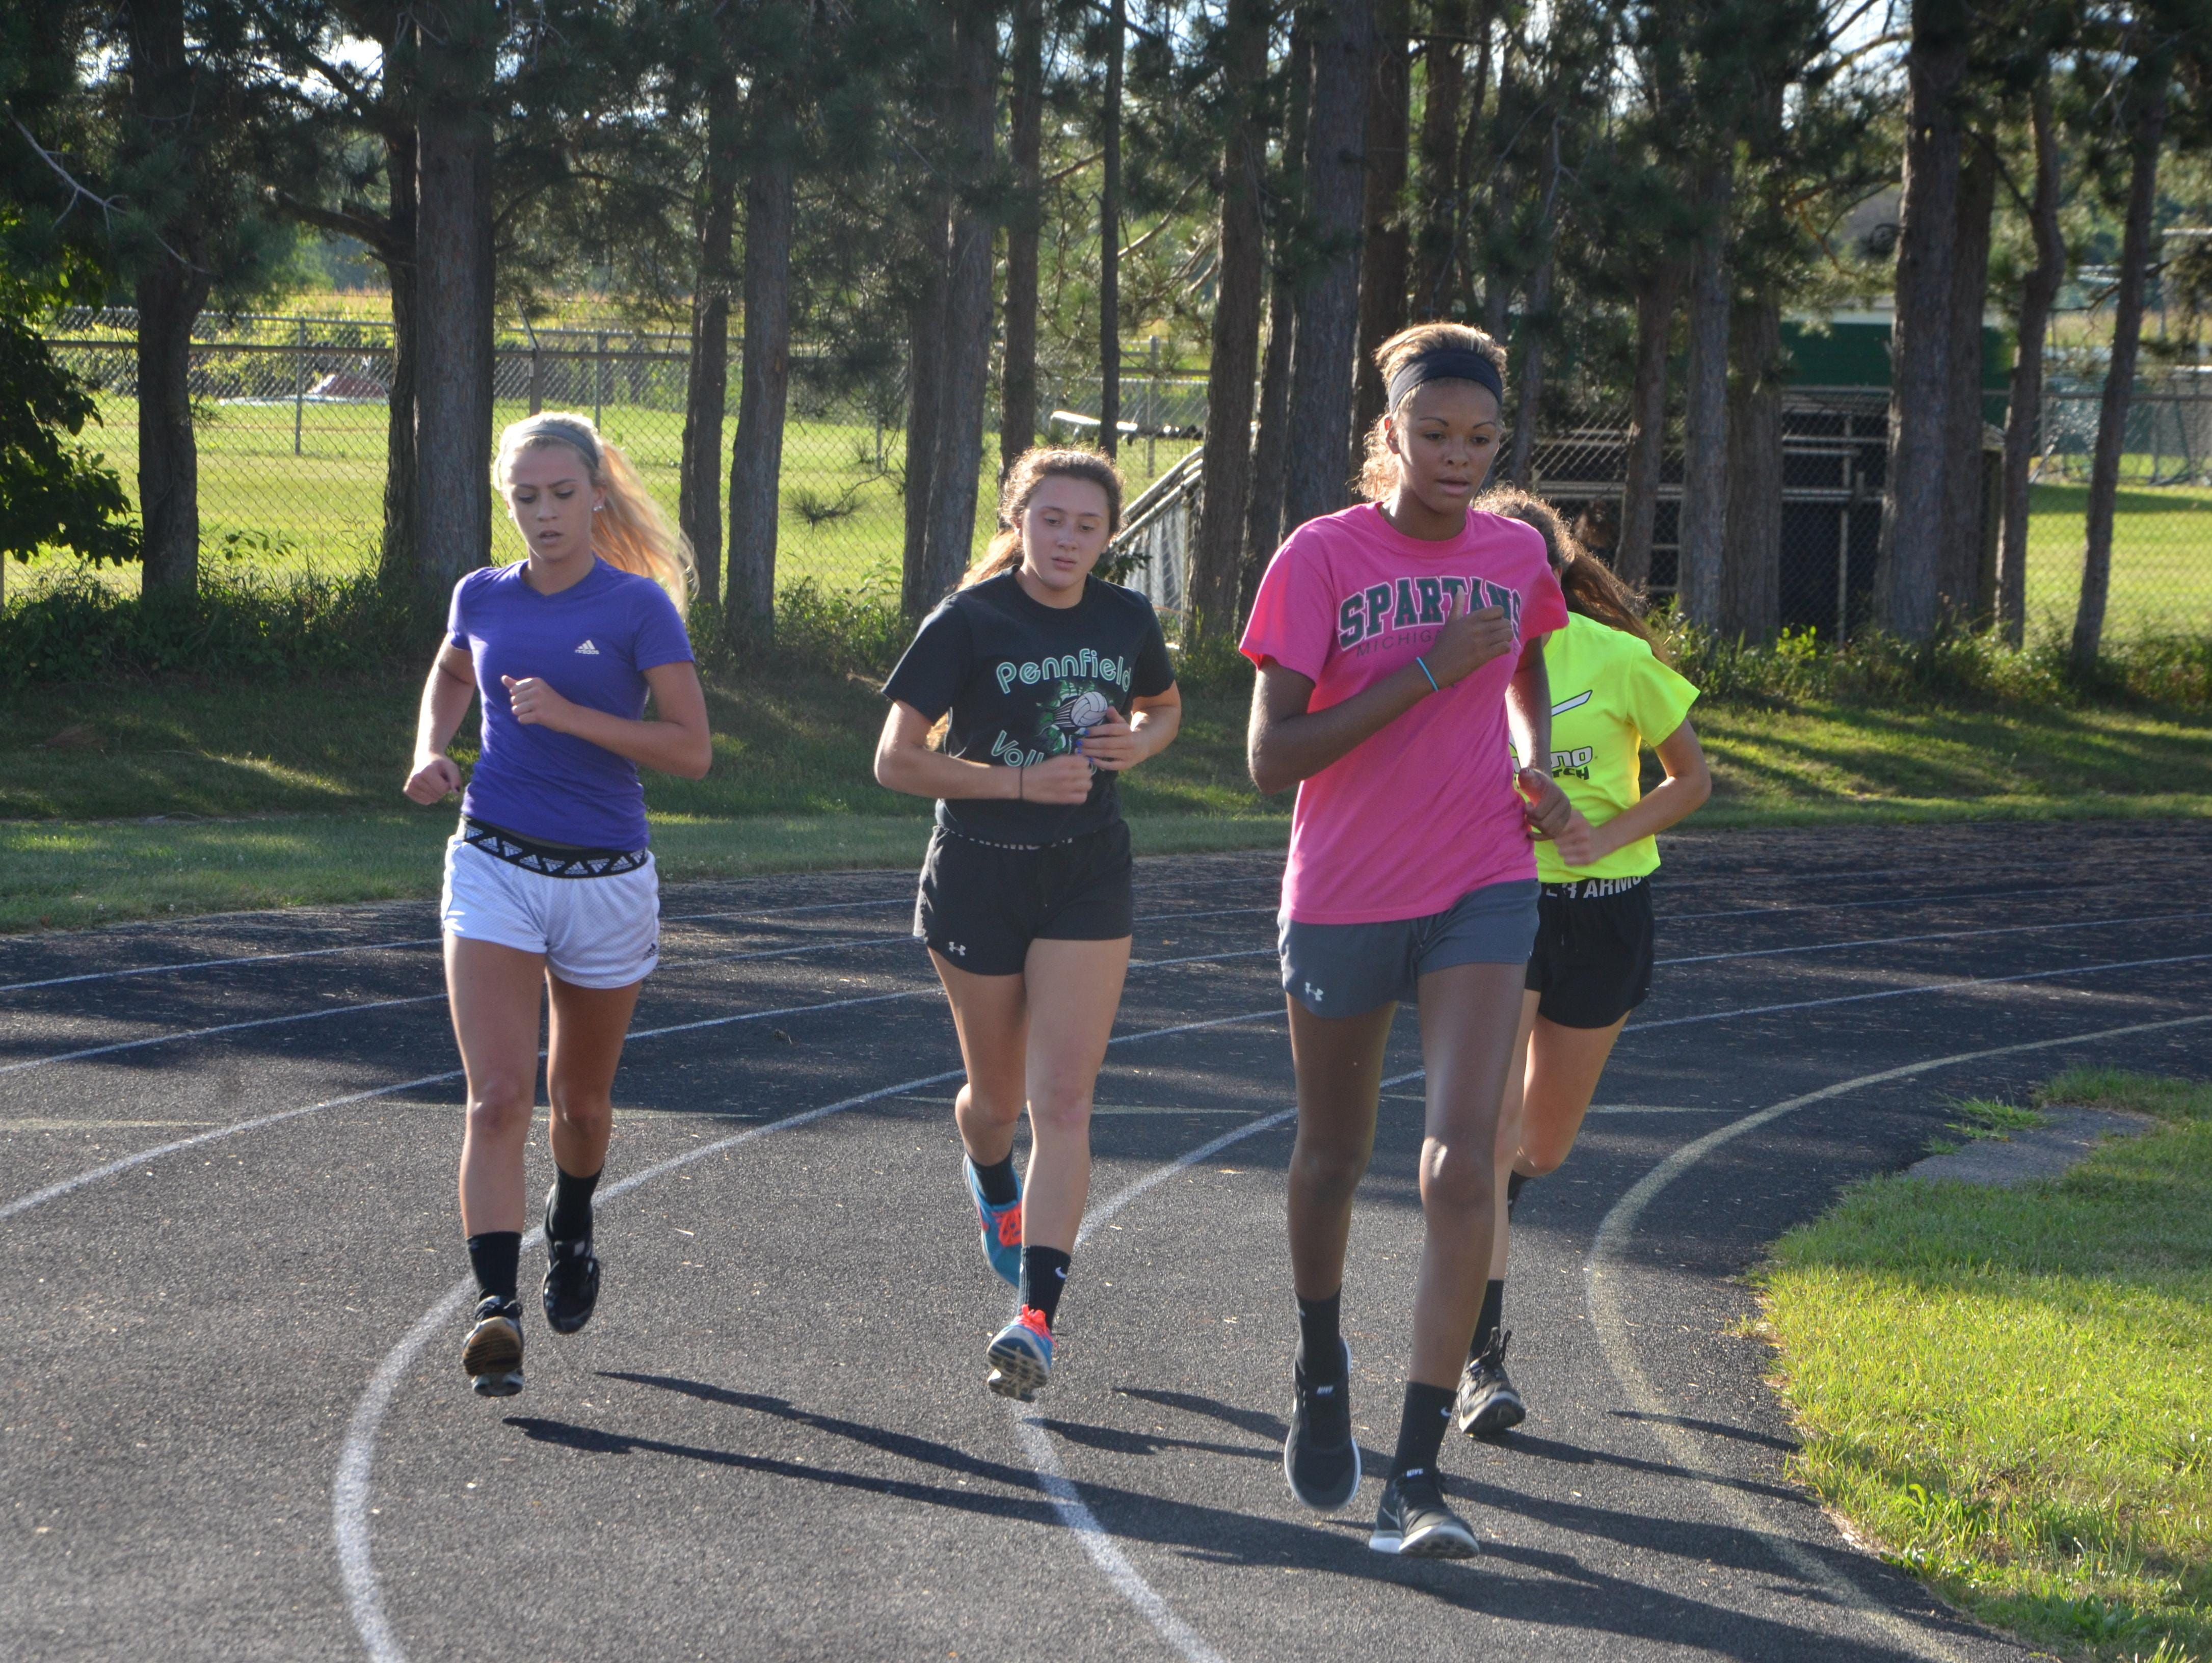 Members of the Pennfield volleyball team run a mile as part of the first practice of the season on Wednesday.